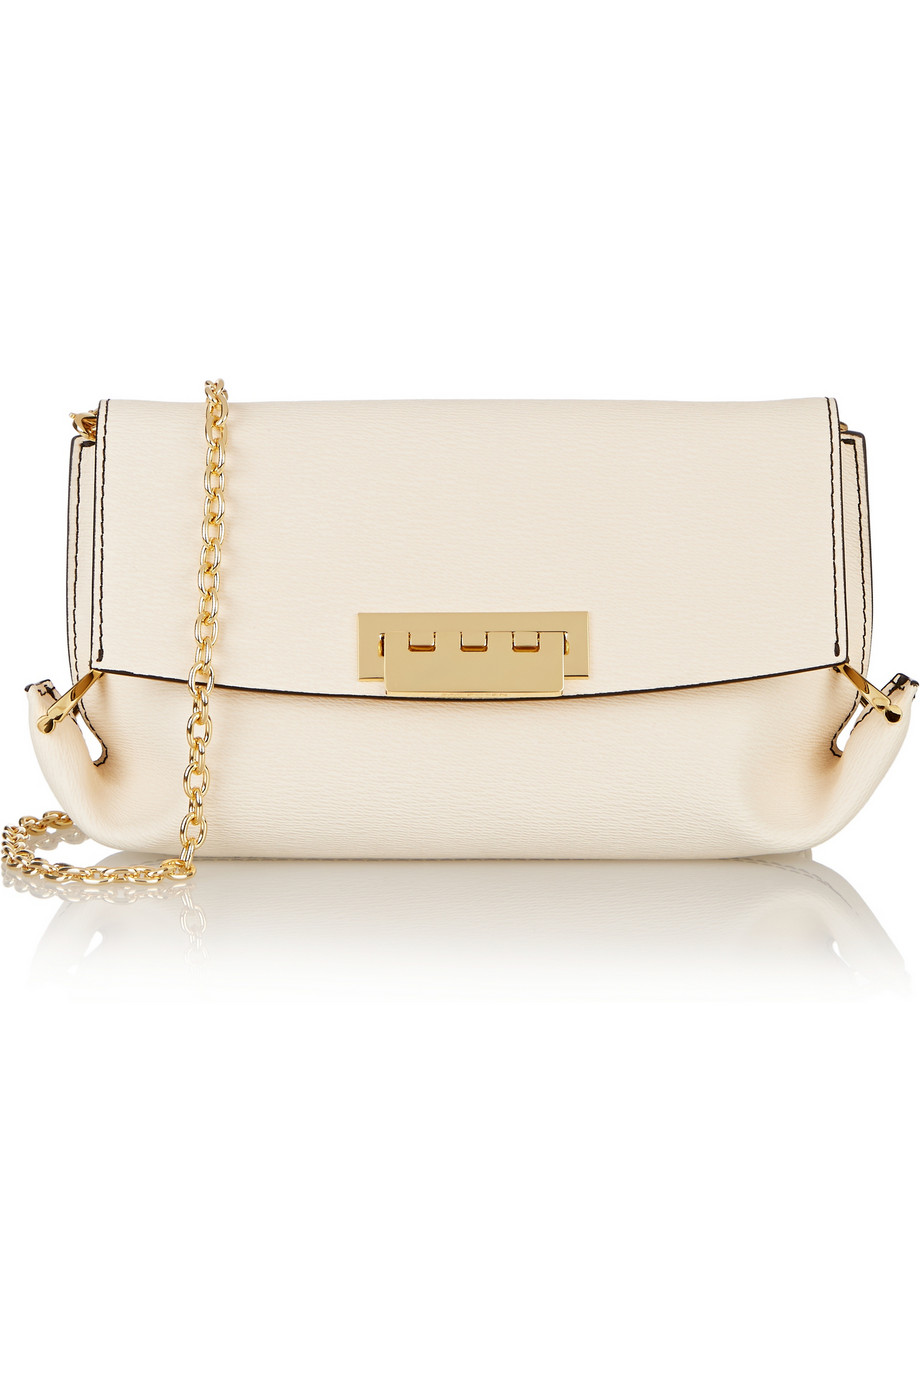 Zac Posen Eartha Leather Shoulder Bag $217.25